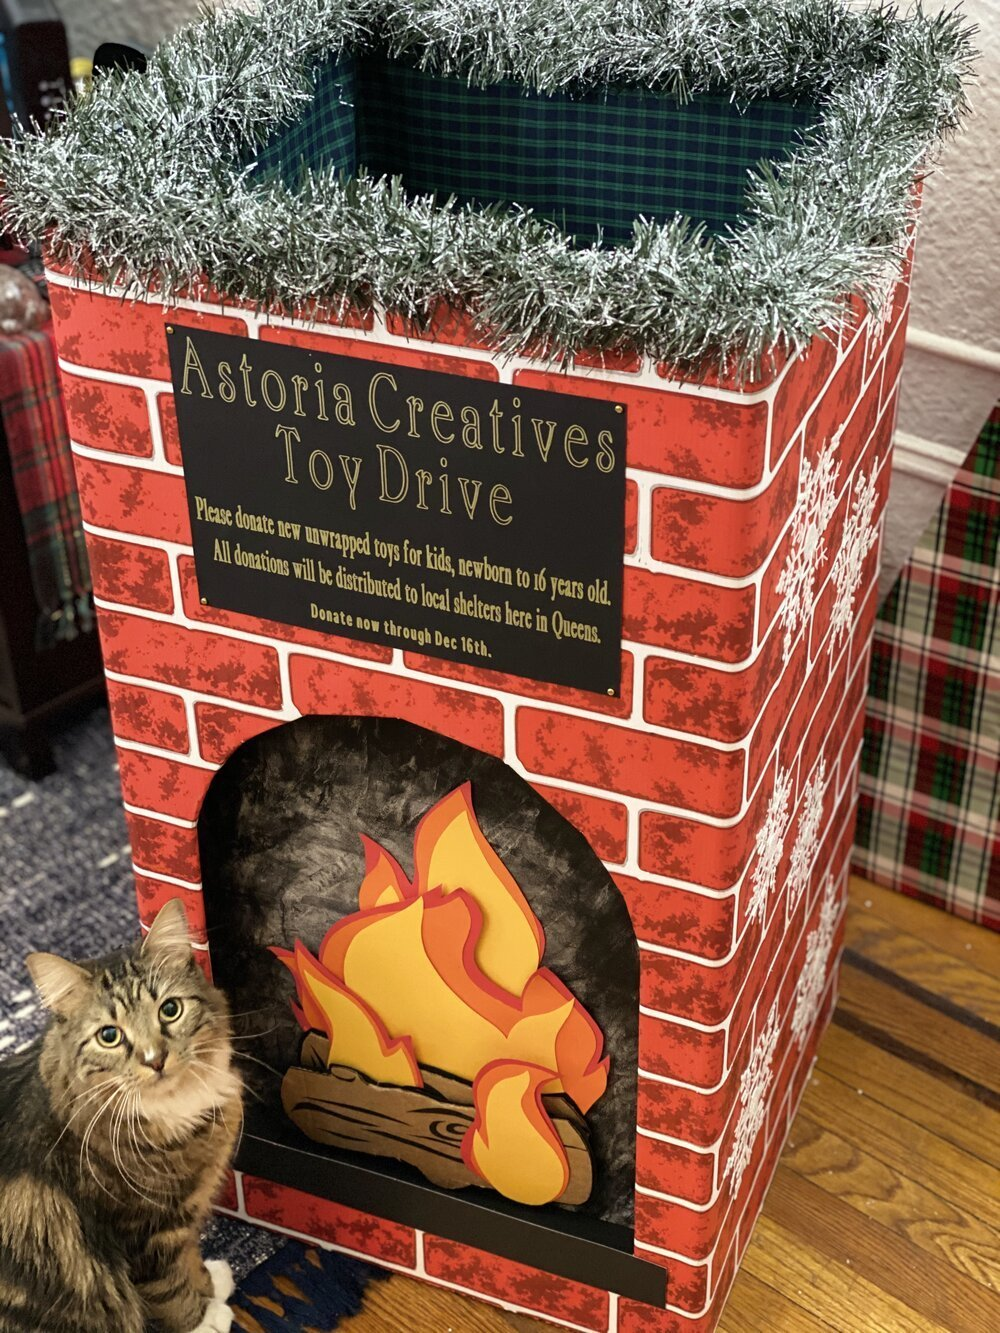 'Tis the season for giving! Turn a toy drive donation collection box into a vintage fireplace. Don't forget to give back this year!  #christmastoydrive #toydrive #vintagechristmas #gaycouple #astorianewyork #astoriaqueens #queens #christmasdonations #christmascardboardcrafts #toysfortots #charityevent #boxupdo #vintagefireplace